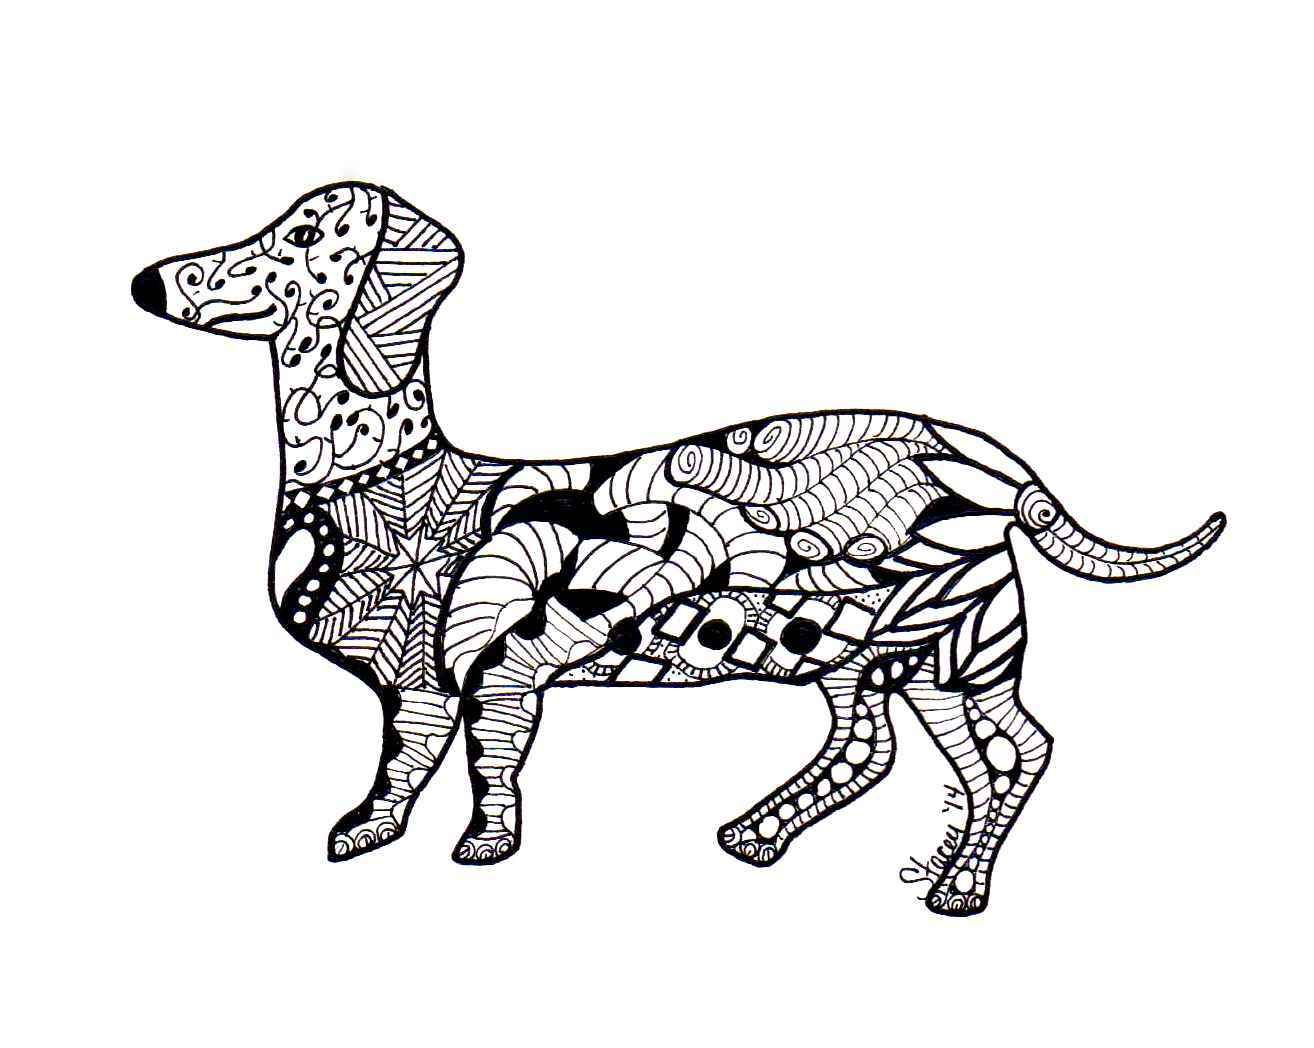 Zentangle Dachshunds